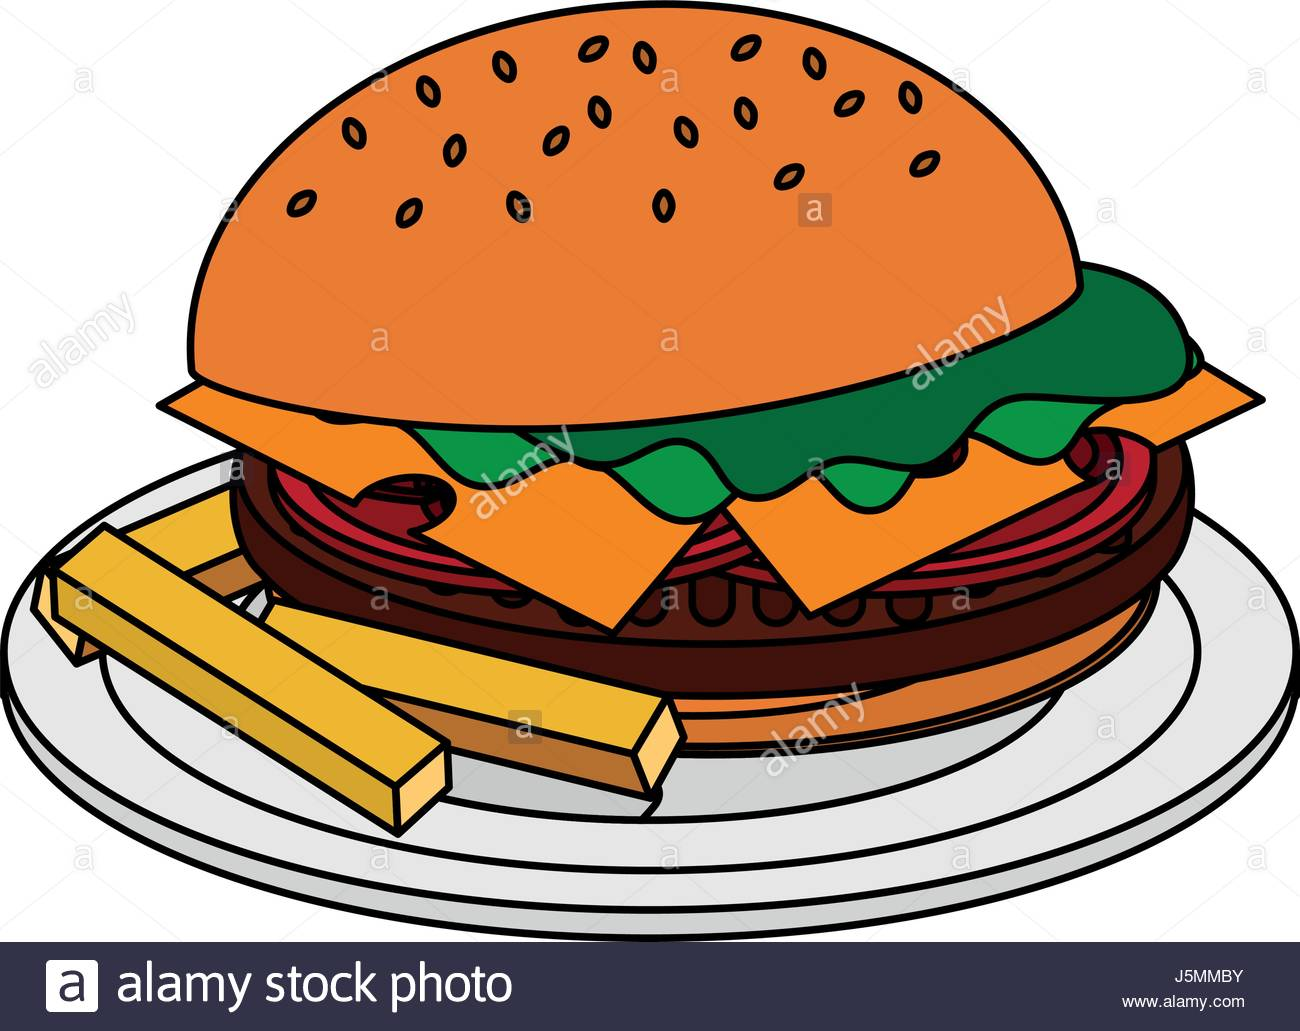 1300x1031 Color Image Cartoon Hamburger In Dish With French Fries Stock